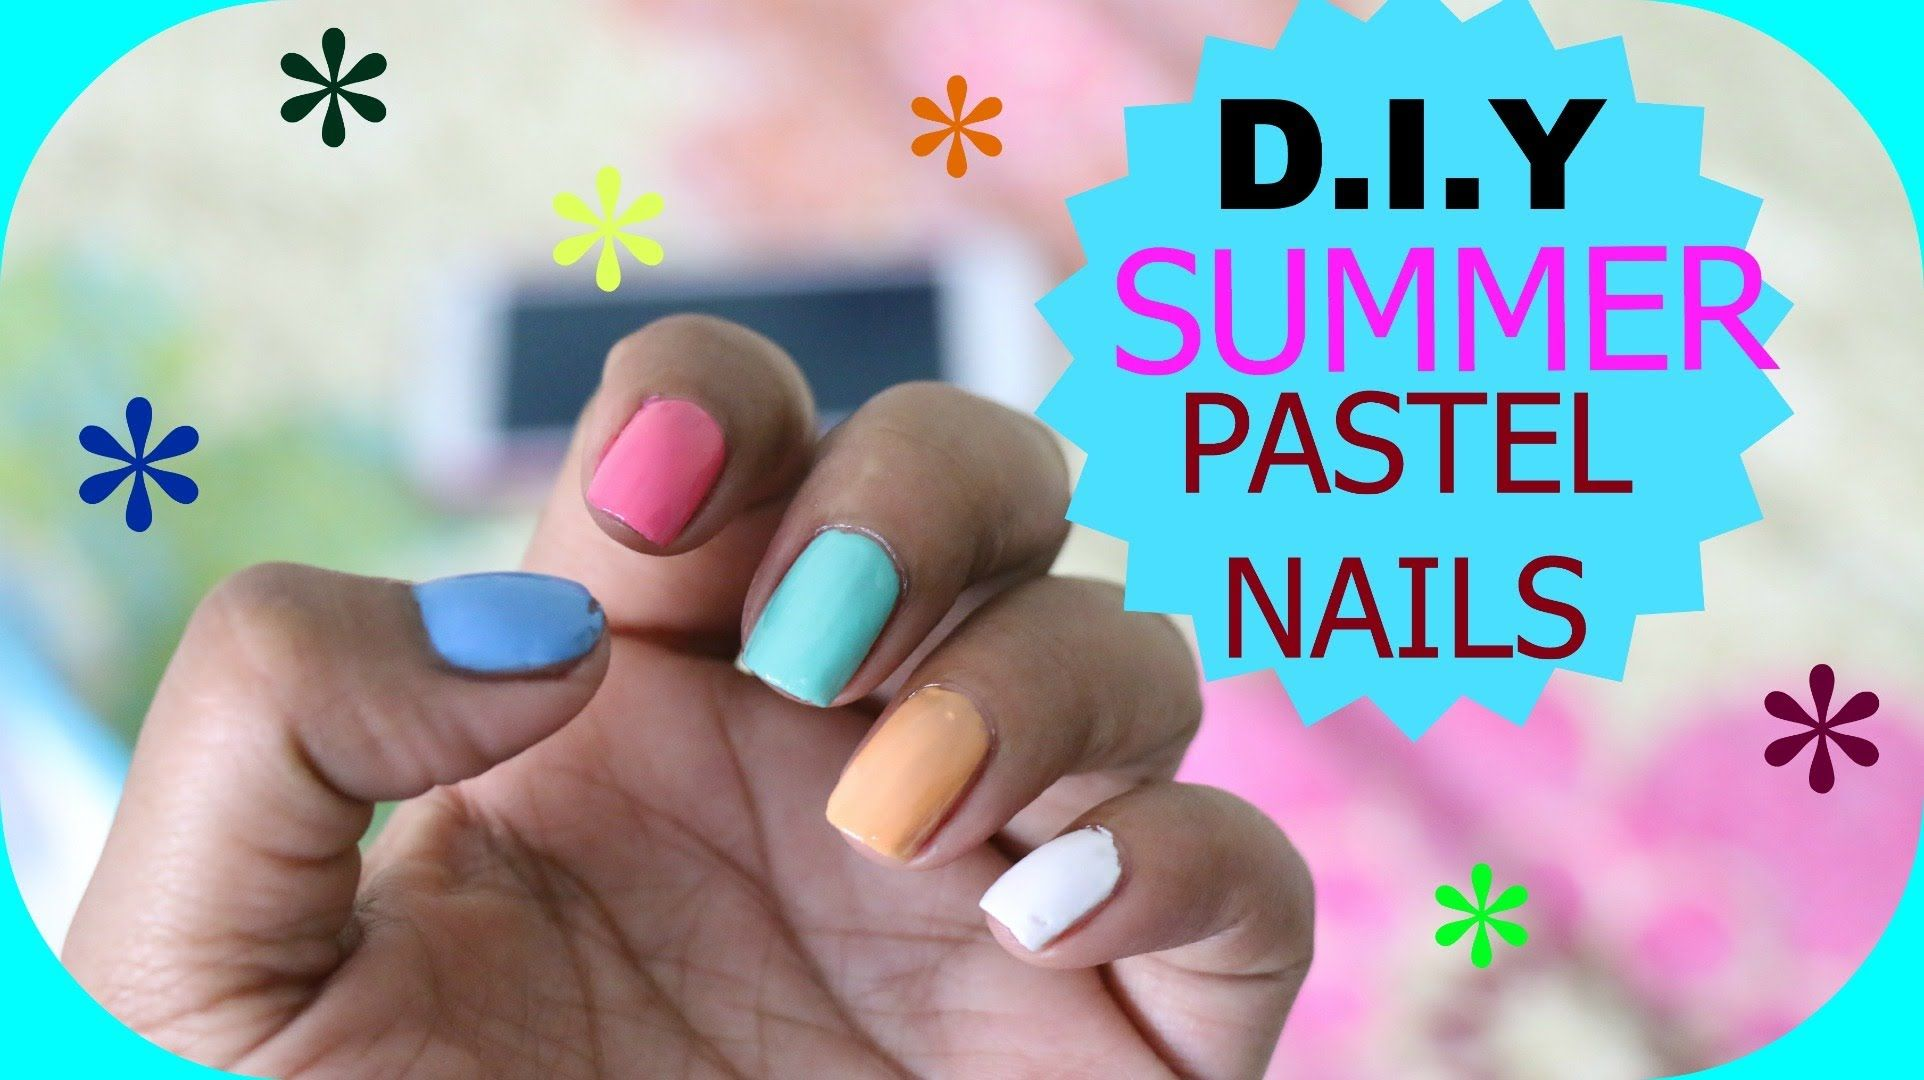 Summer Pastel nails DIY Manicure Tutorial For Beginners